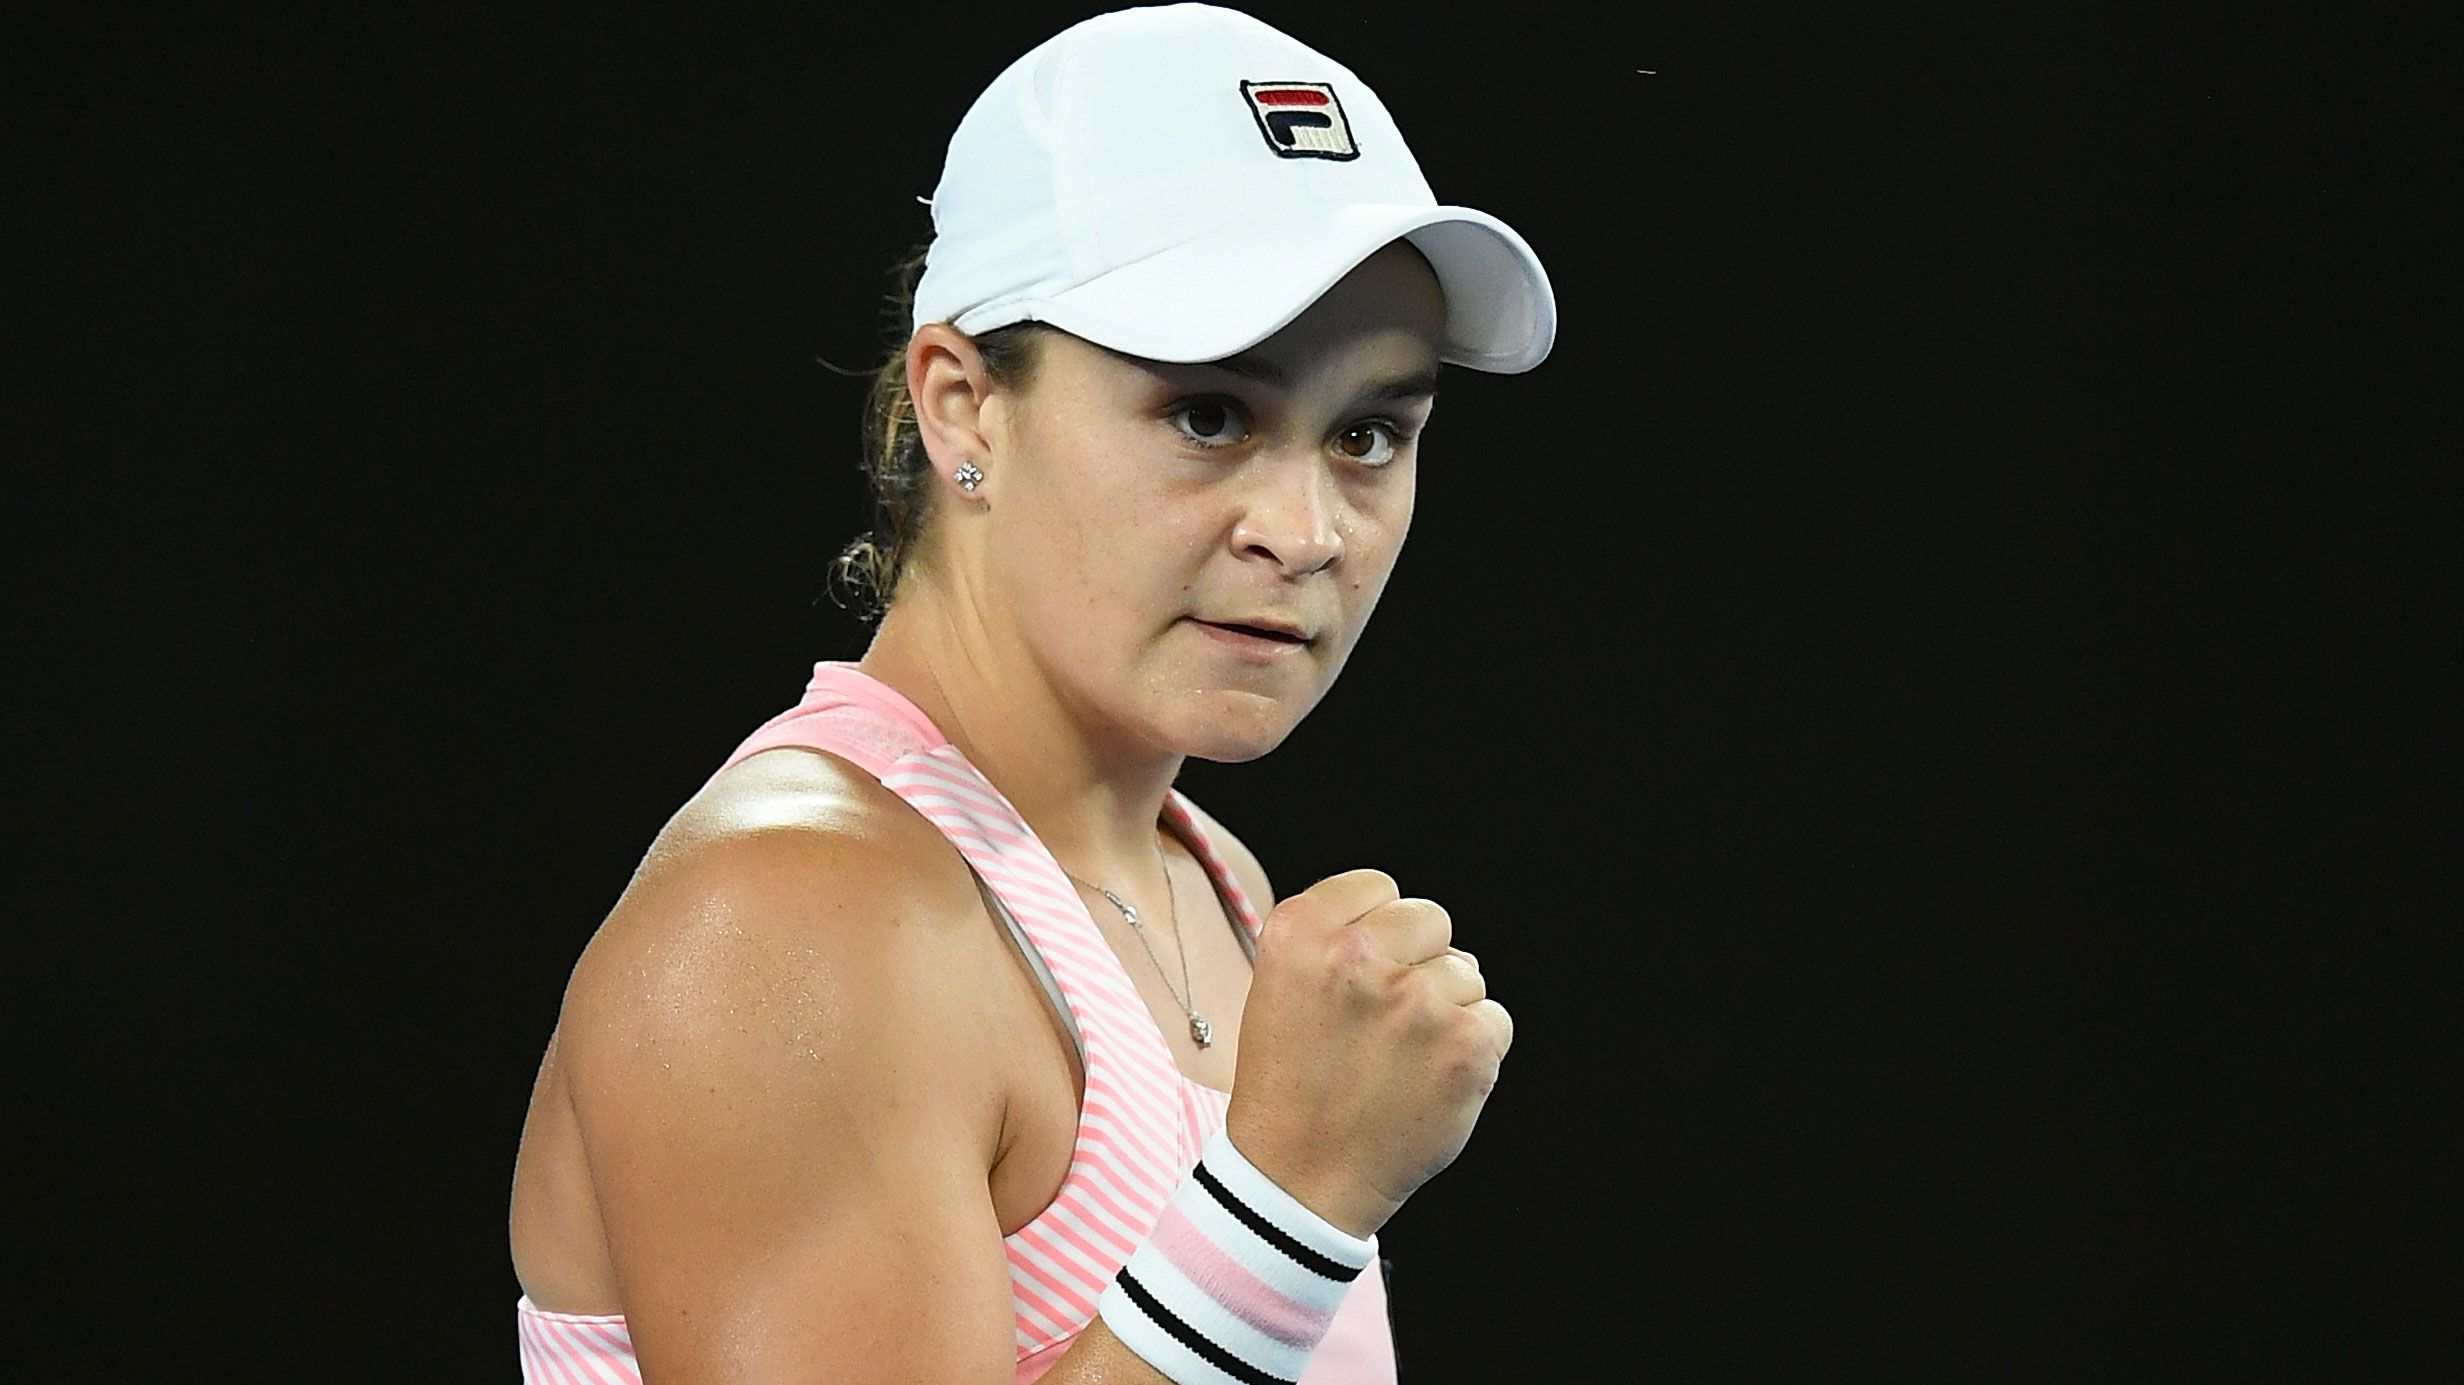 The secret weapon behind Ash Barty's charge to the top of women's tennis